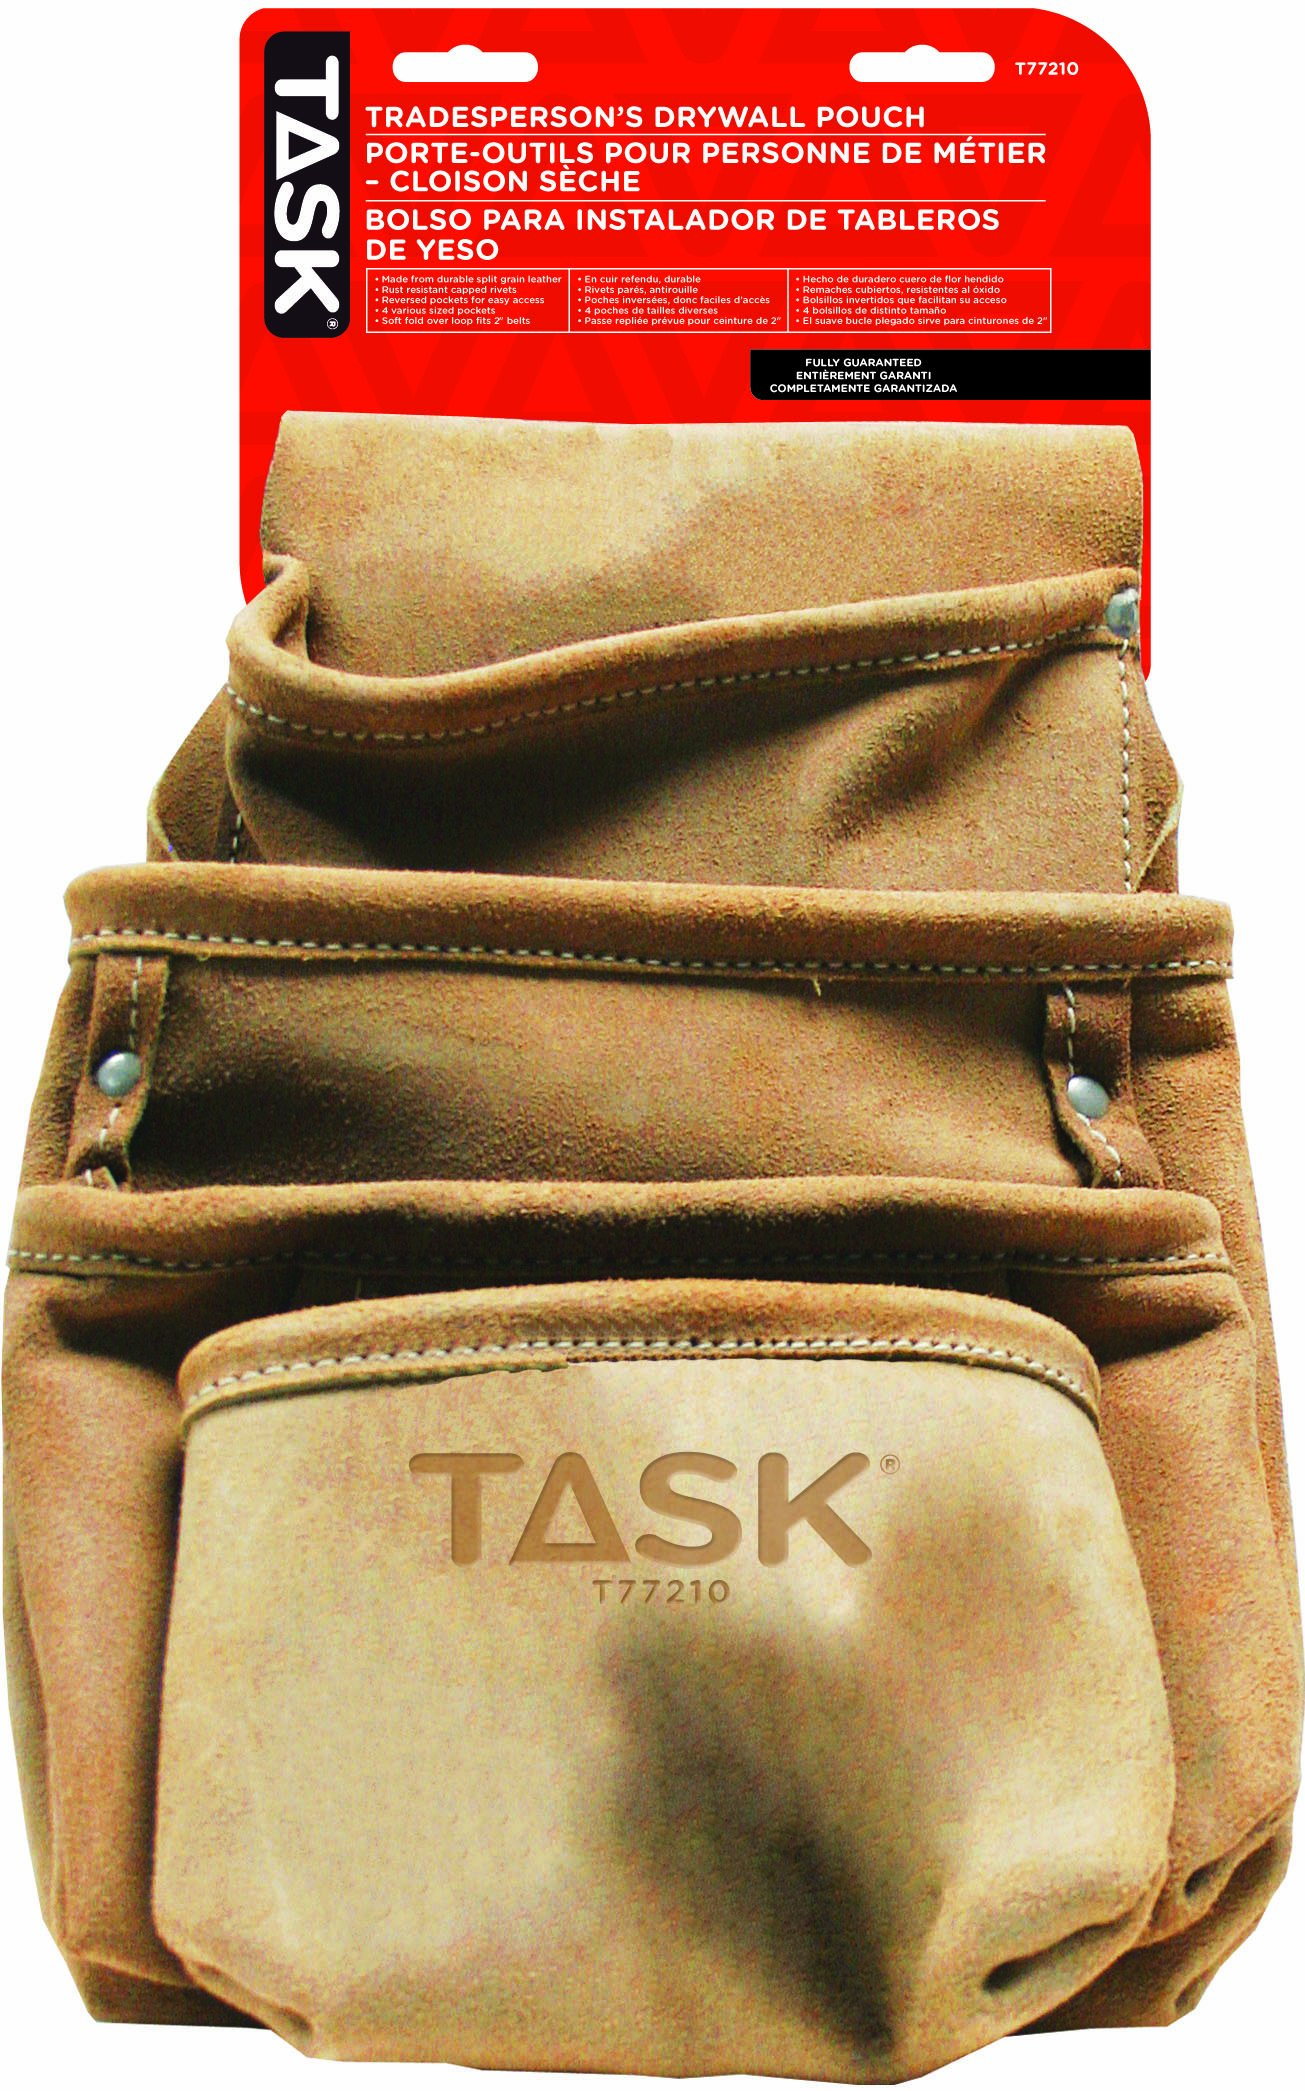 Task Tools T77210 Tradesperson's Leather Drywall Pouch, 4-Pocket